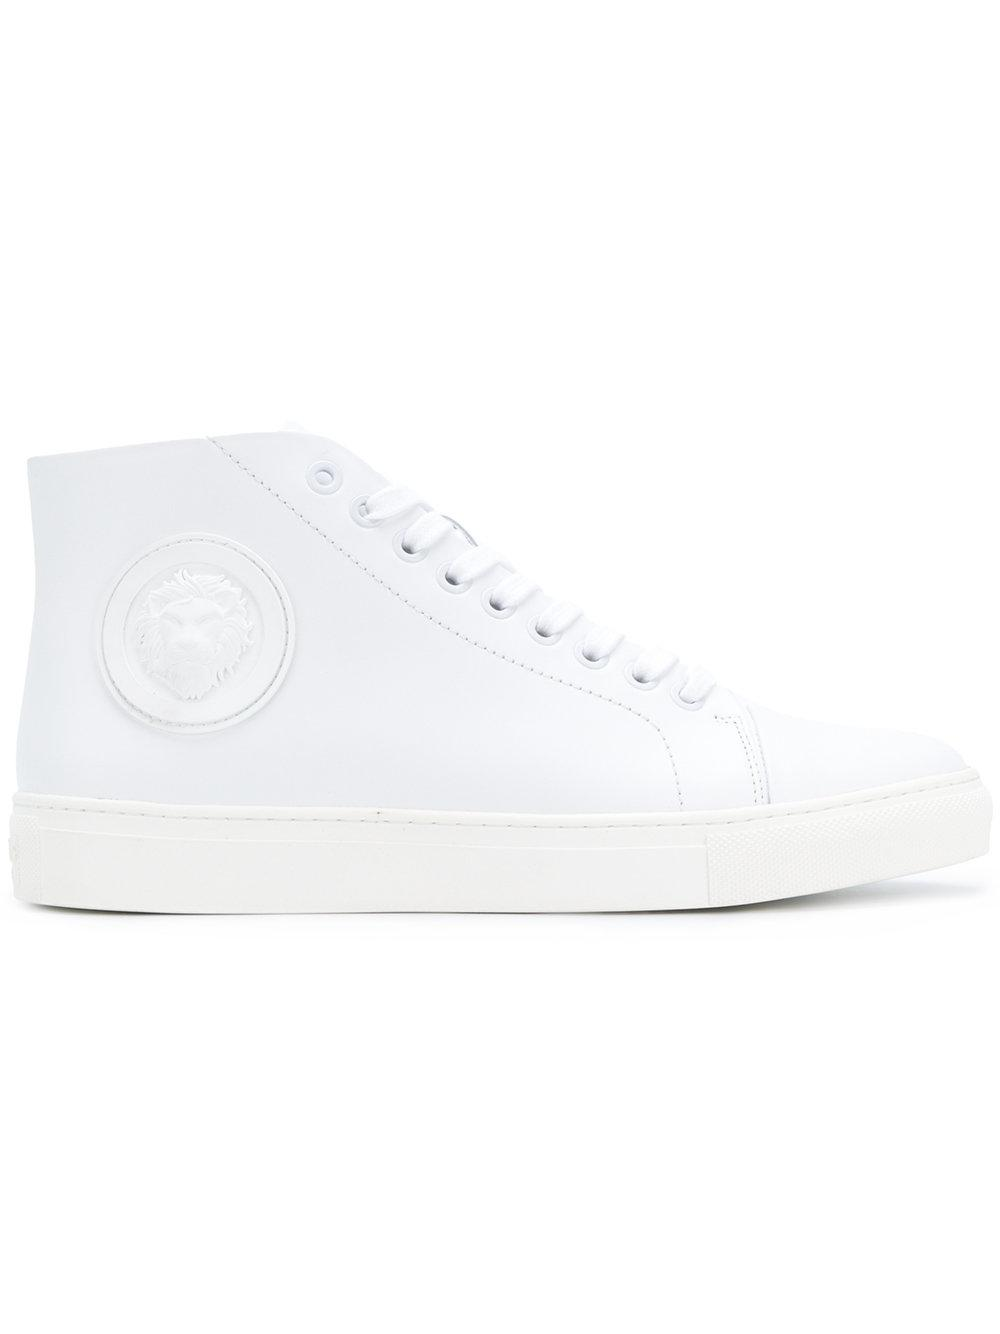 Versus Hi-top Lace Up Sneakers In White